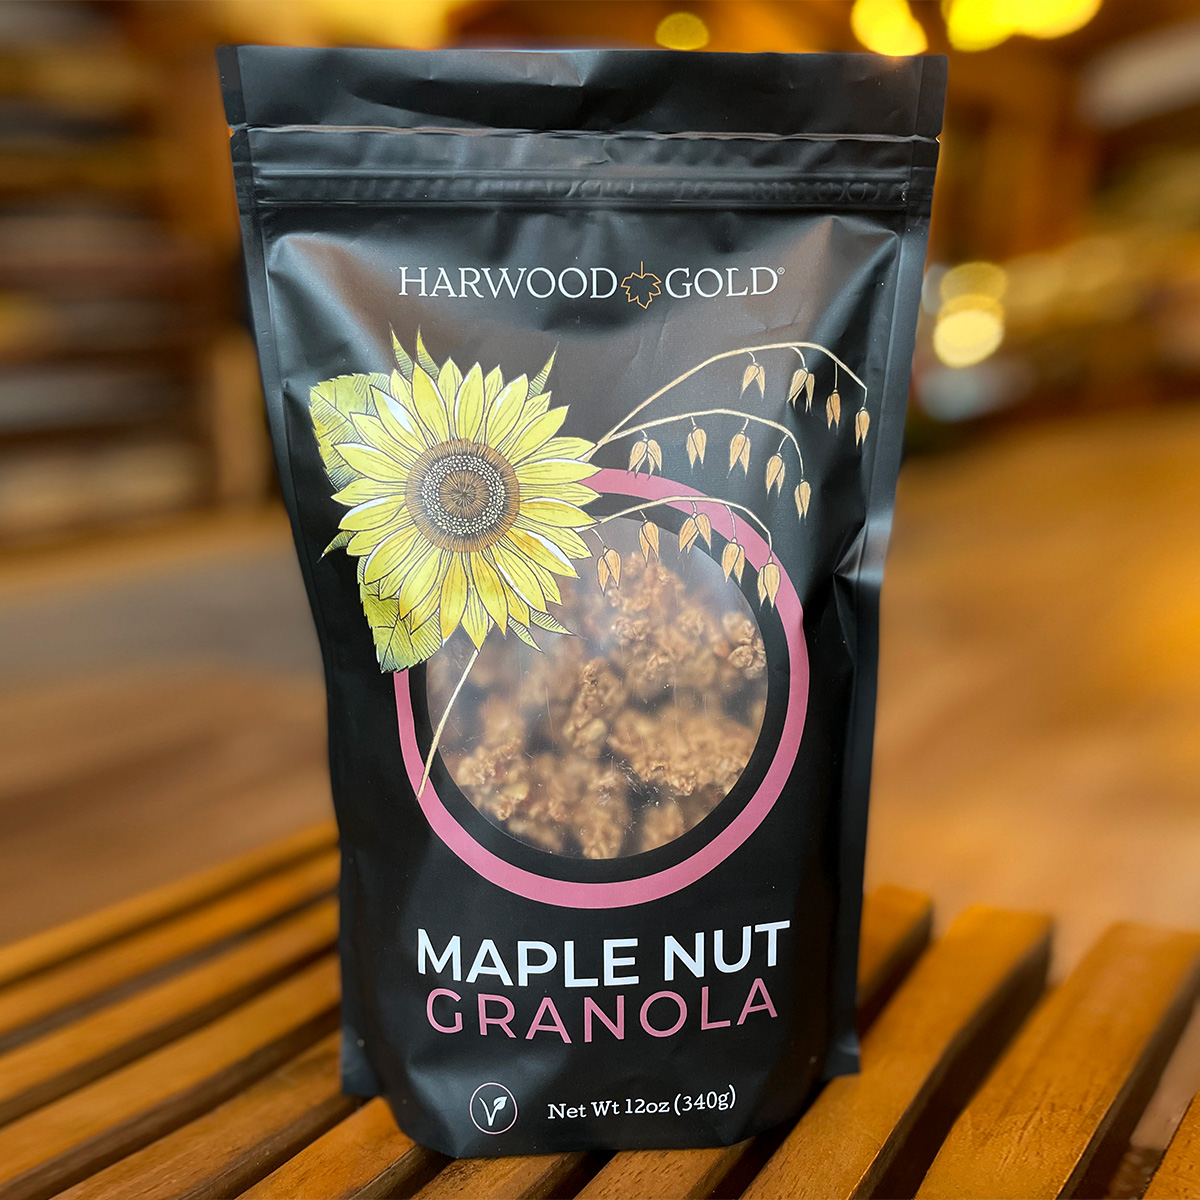 Harwood Gold Maple Nut Granola